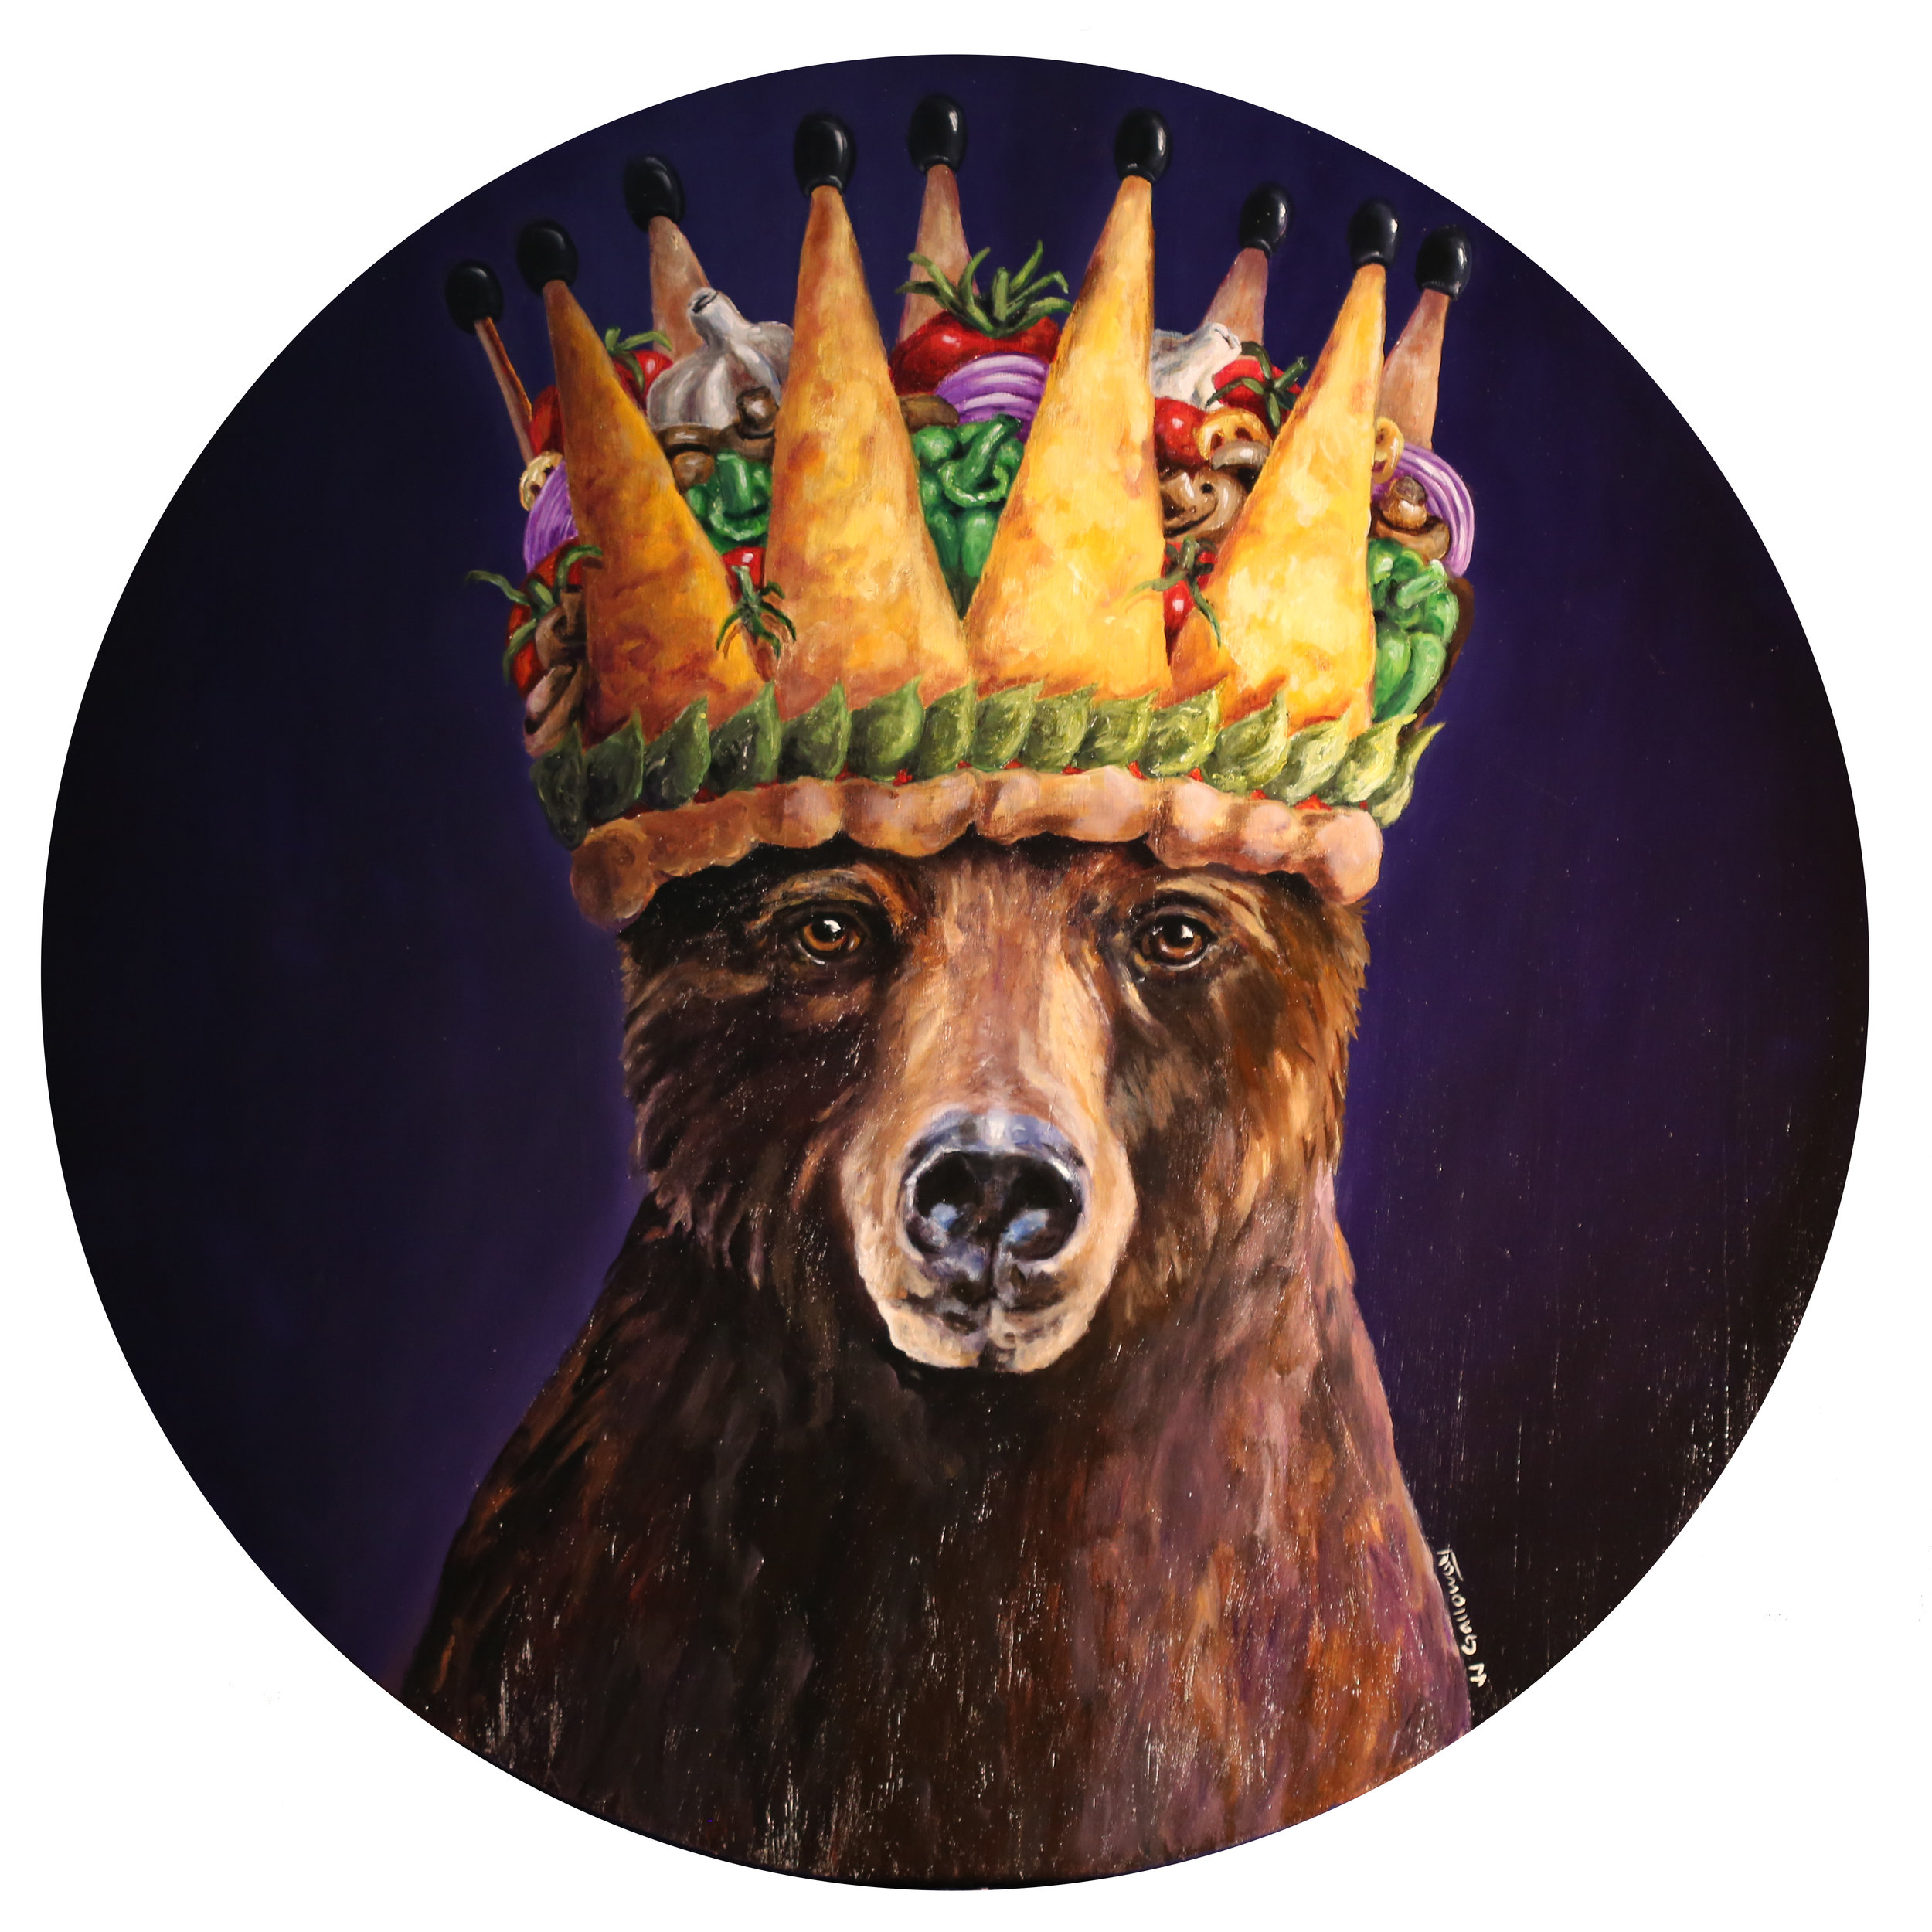 "The Bear and his Pizza Crown, 28"" in diameter oil on wood."